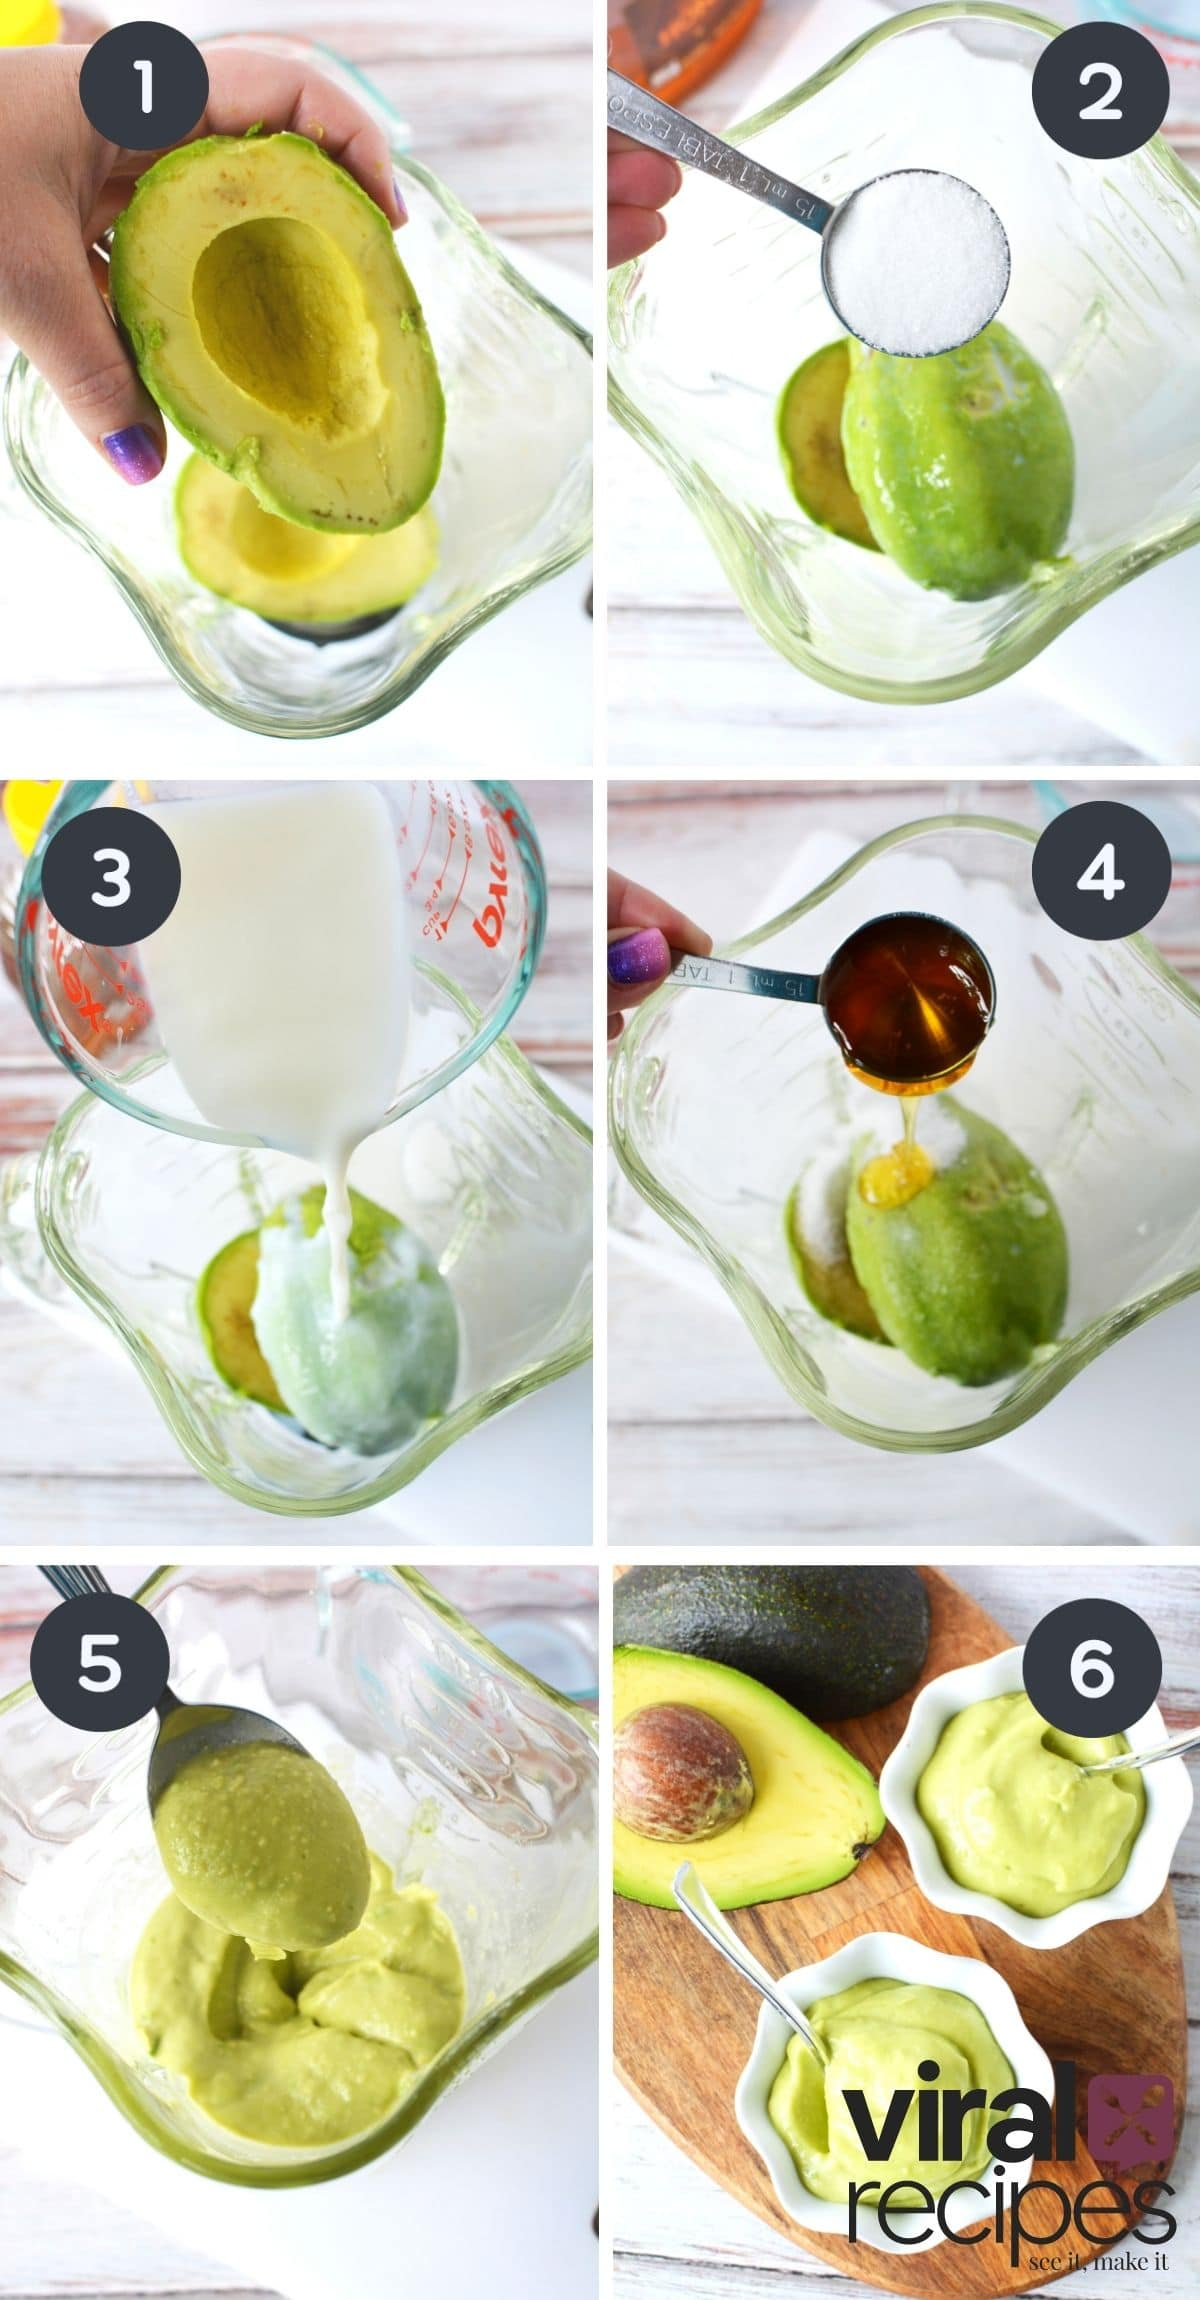 6 image collage of avocado pudding step by step.